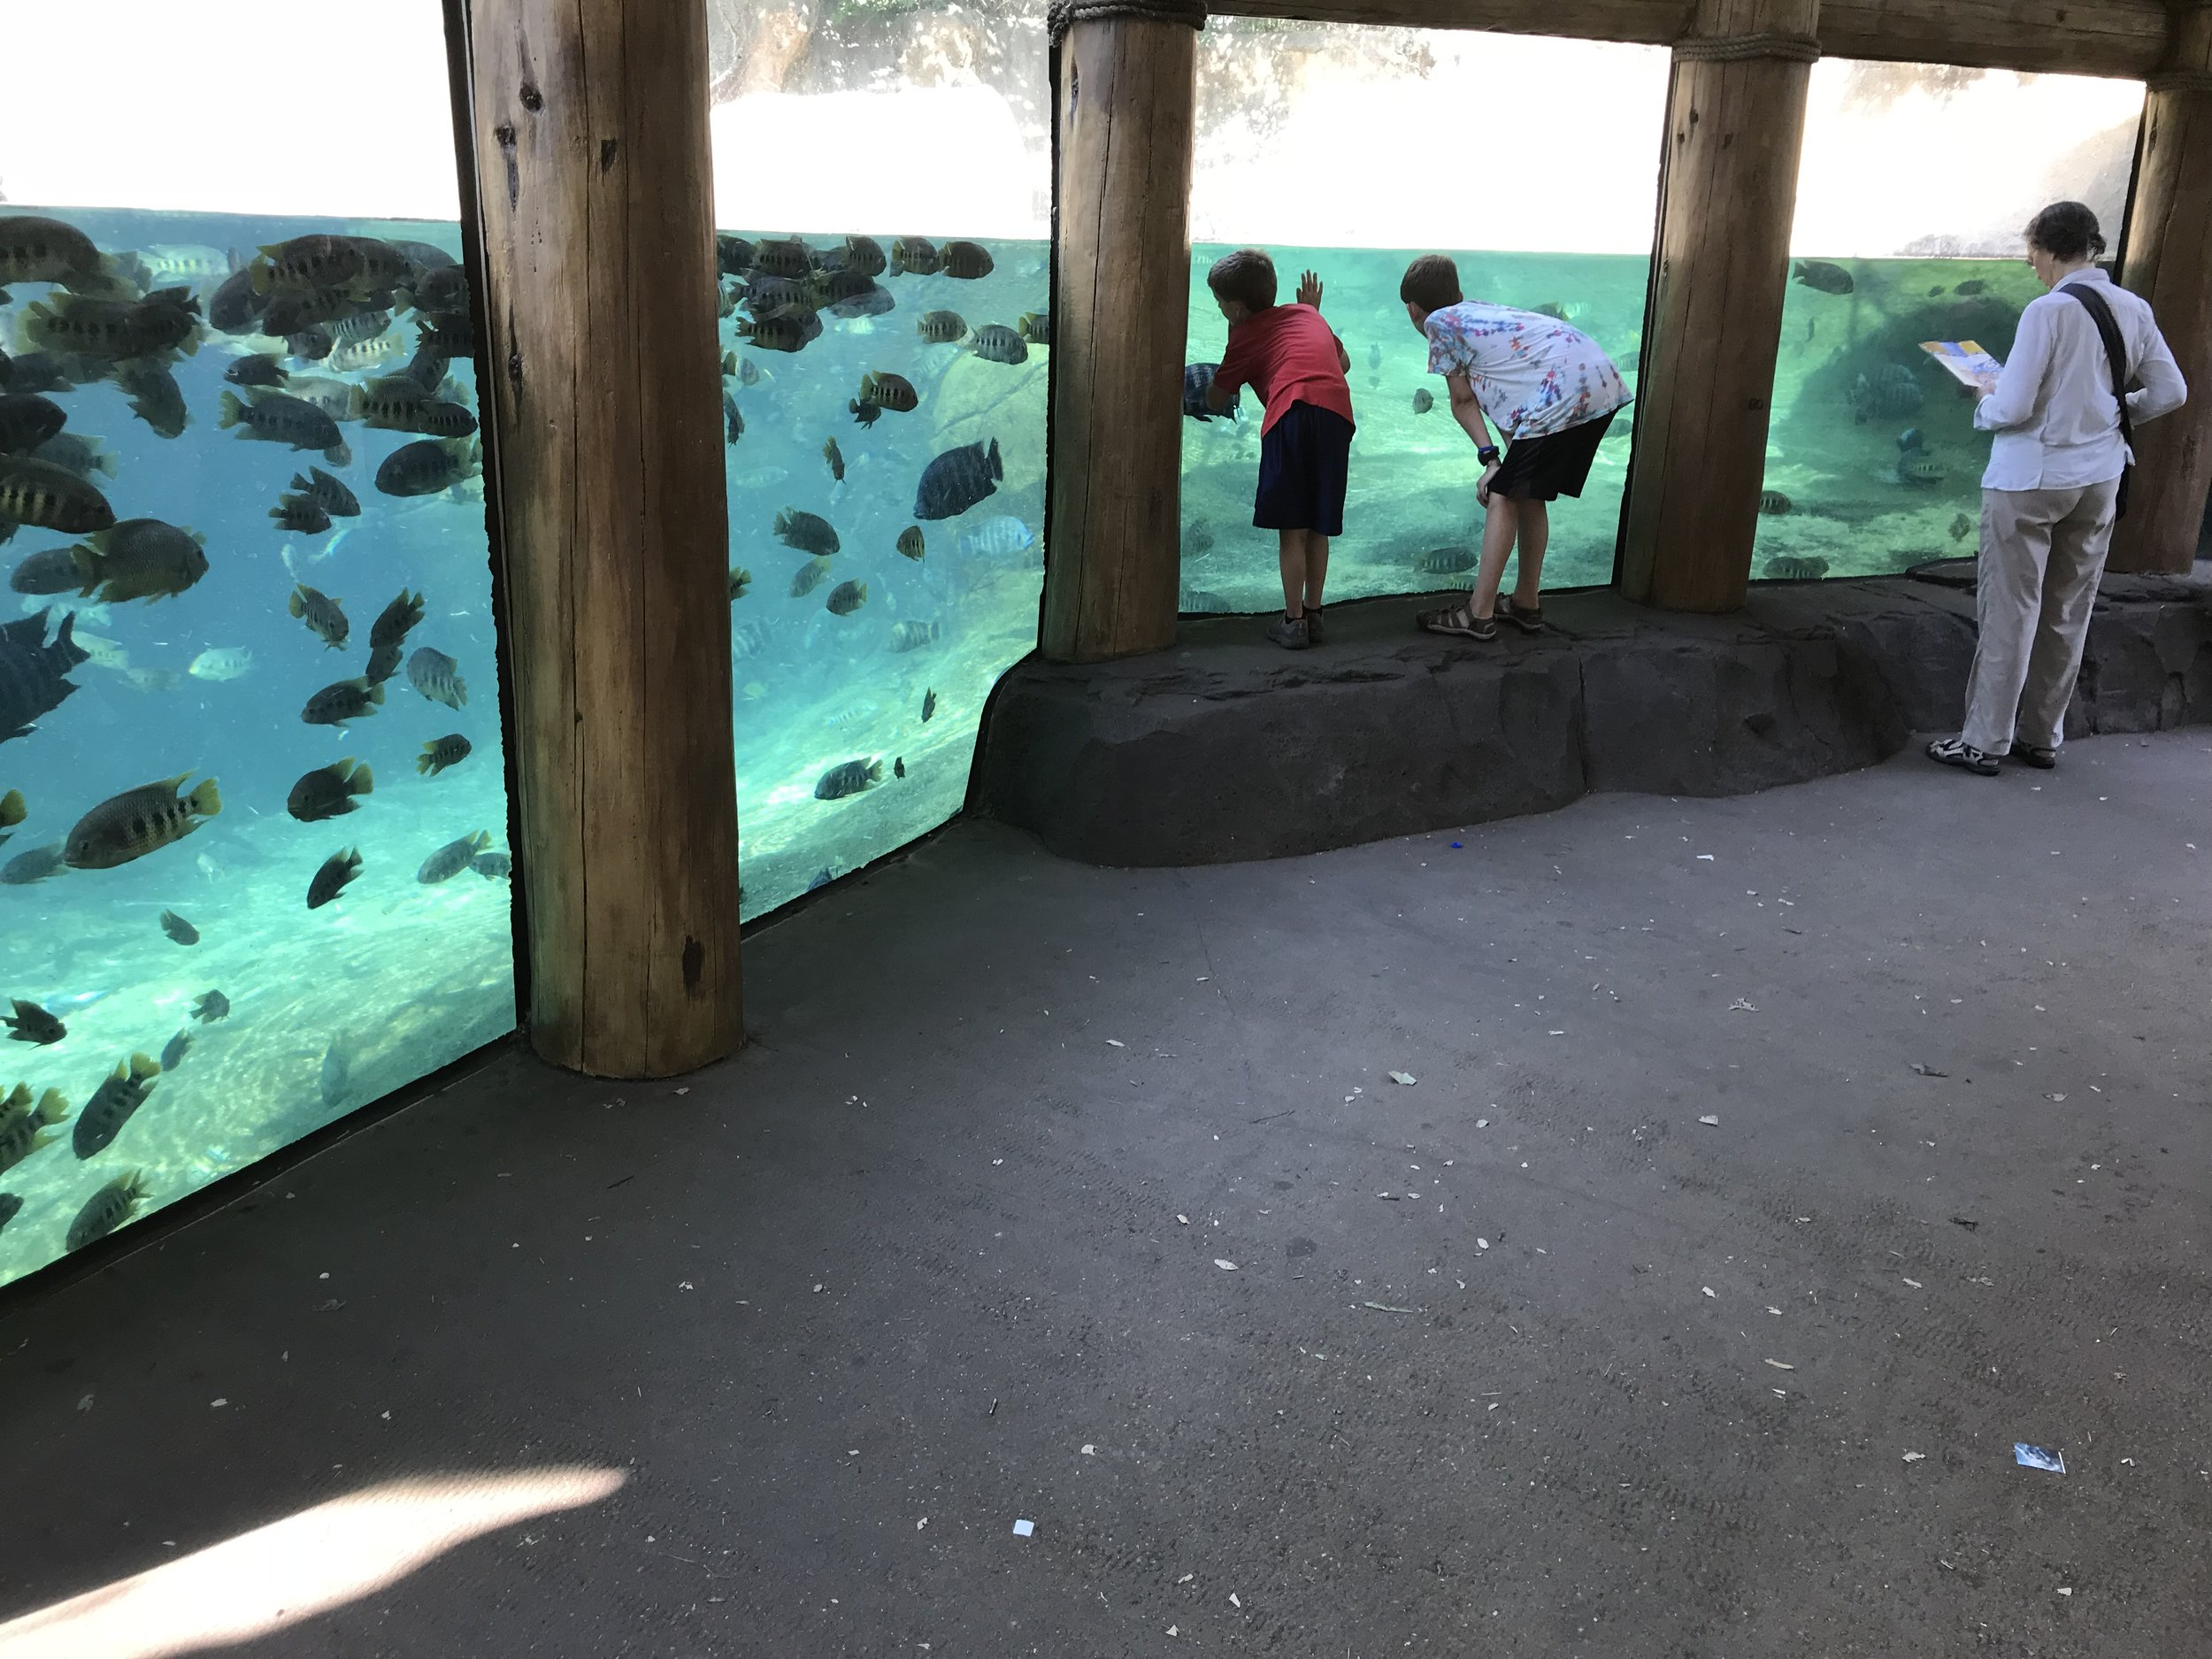 St. Louis Zoo (FREE, by the way!)- a whole different world is under water. So cool!